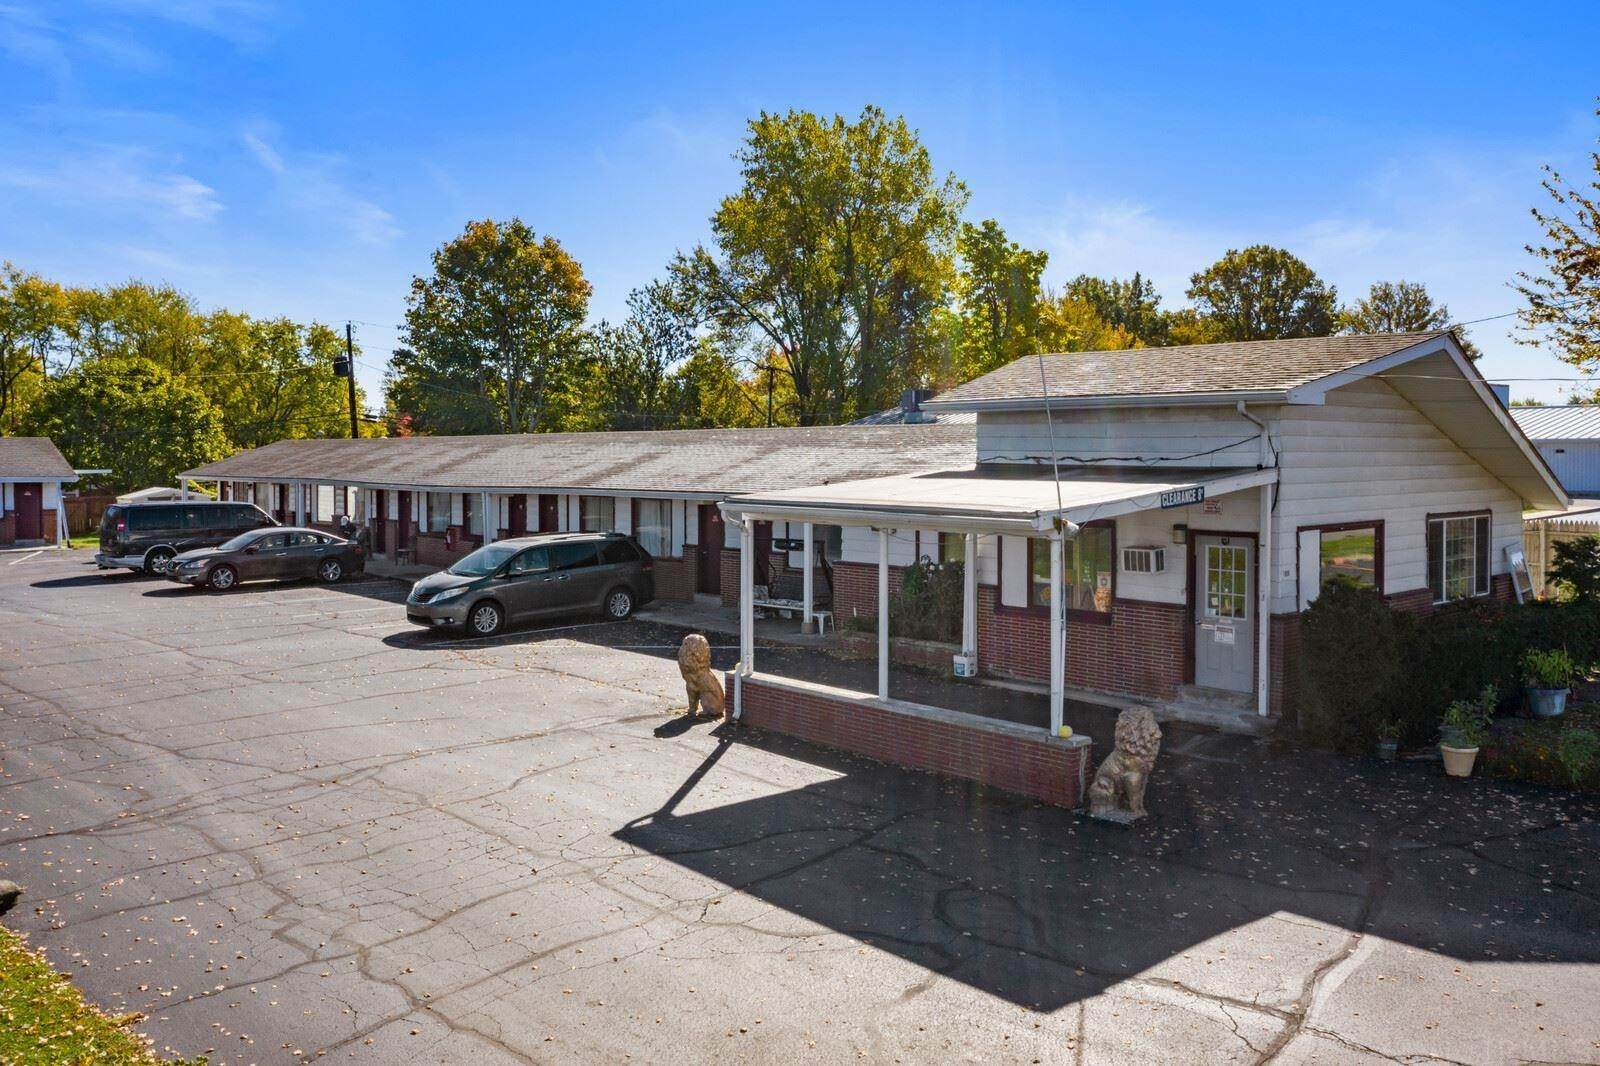 Hotel for Sale at 1806 N Walnut Street Hartford City, Indiana 47348 United States